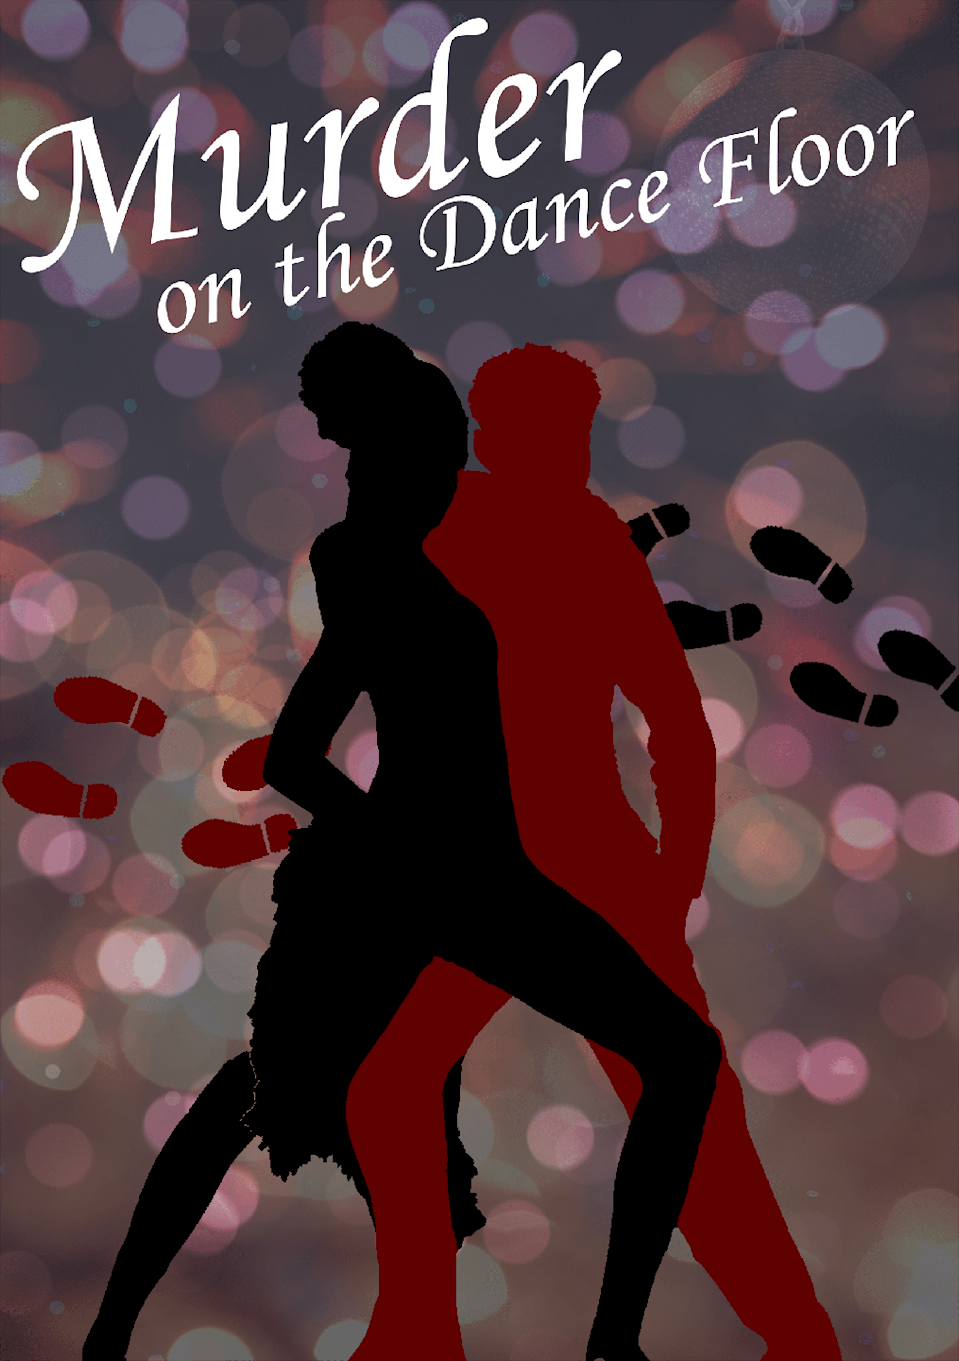 """<p>A night of samba and salsa has gone terribly wrong. The professional dancers and judges need your help to uncover the killer among them. </p><p><a class=""""link rapid-noclick-resp"""" href=""""https://www.red-herring-games.com/product/murder-on-the-dance-floor/"""" rel=""""nofollow noopener"""" target=""""_blank"""" data-ylk=""""slk:PLAY NOW"""">PLAY NOW</a></p>"""